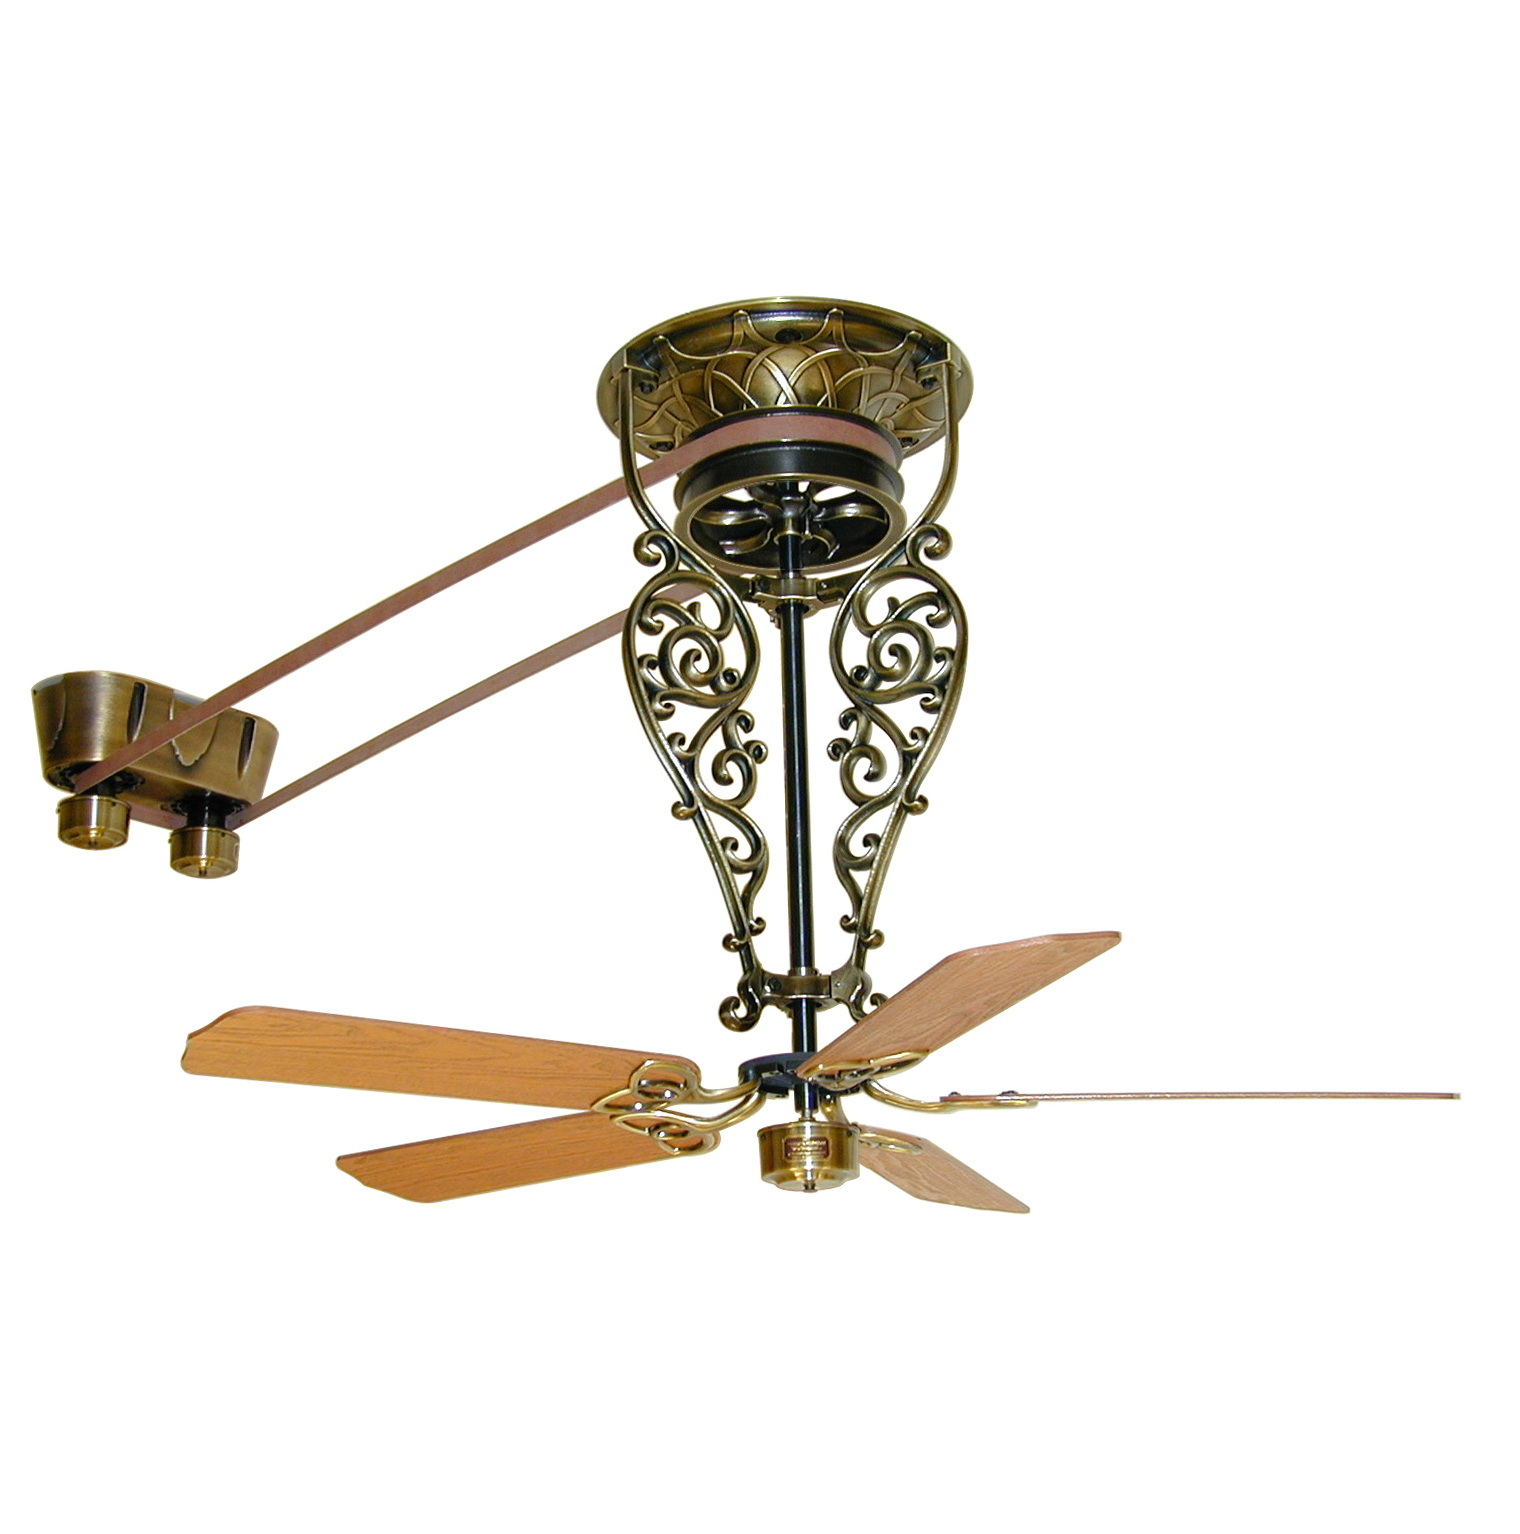 Vintage Looking Fans Antique Ceiling Fans Bring The Industrial Flavor To The